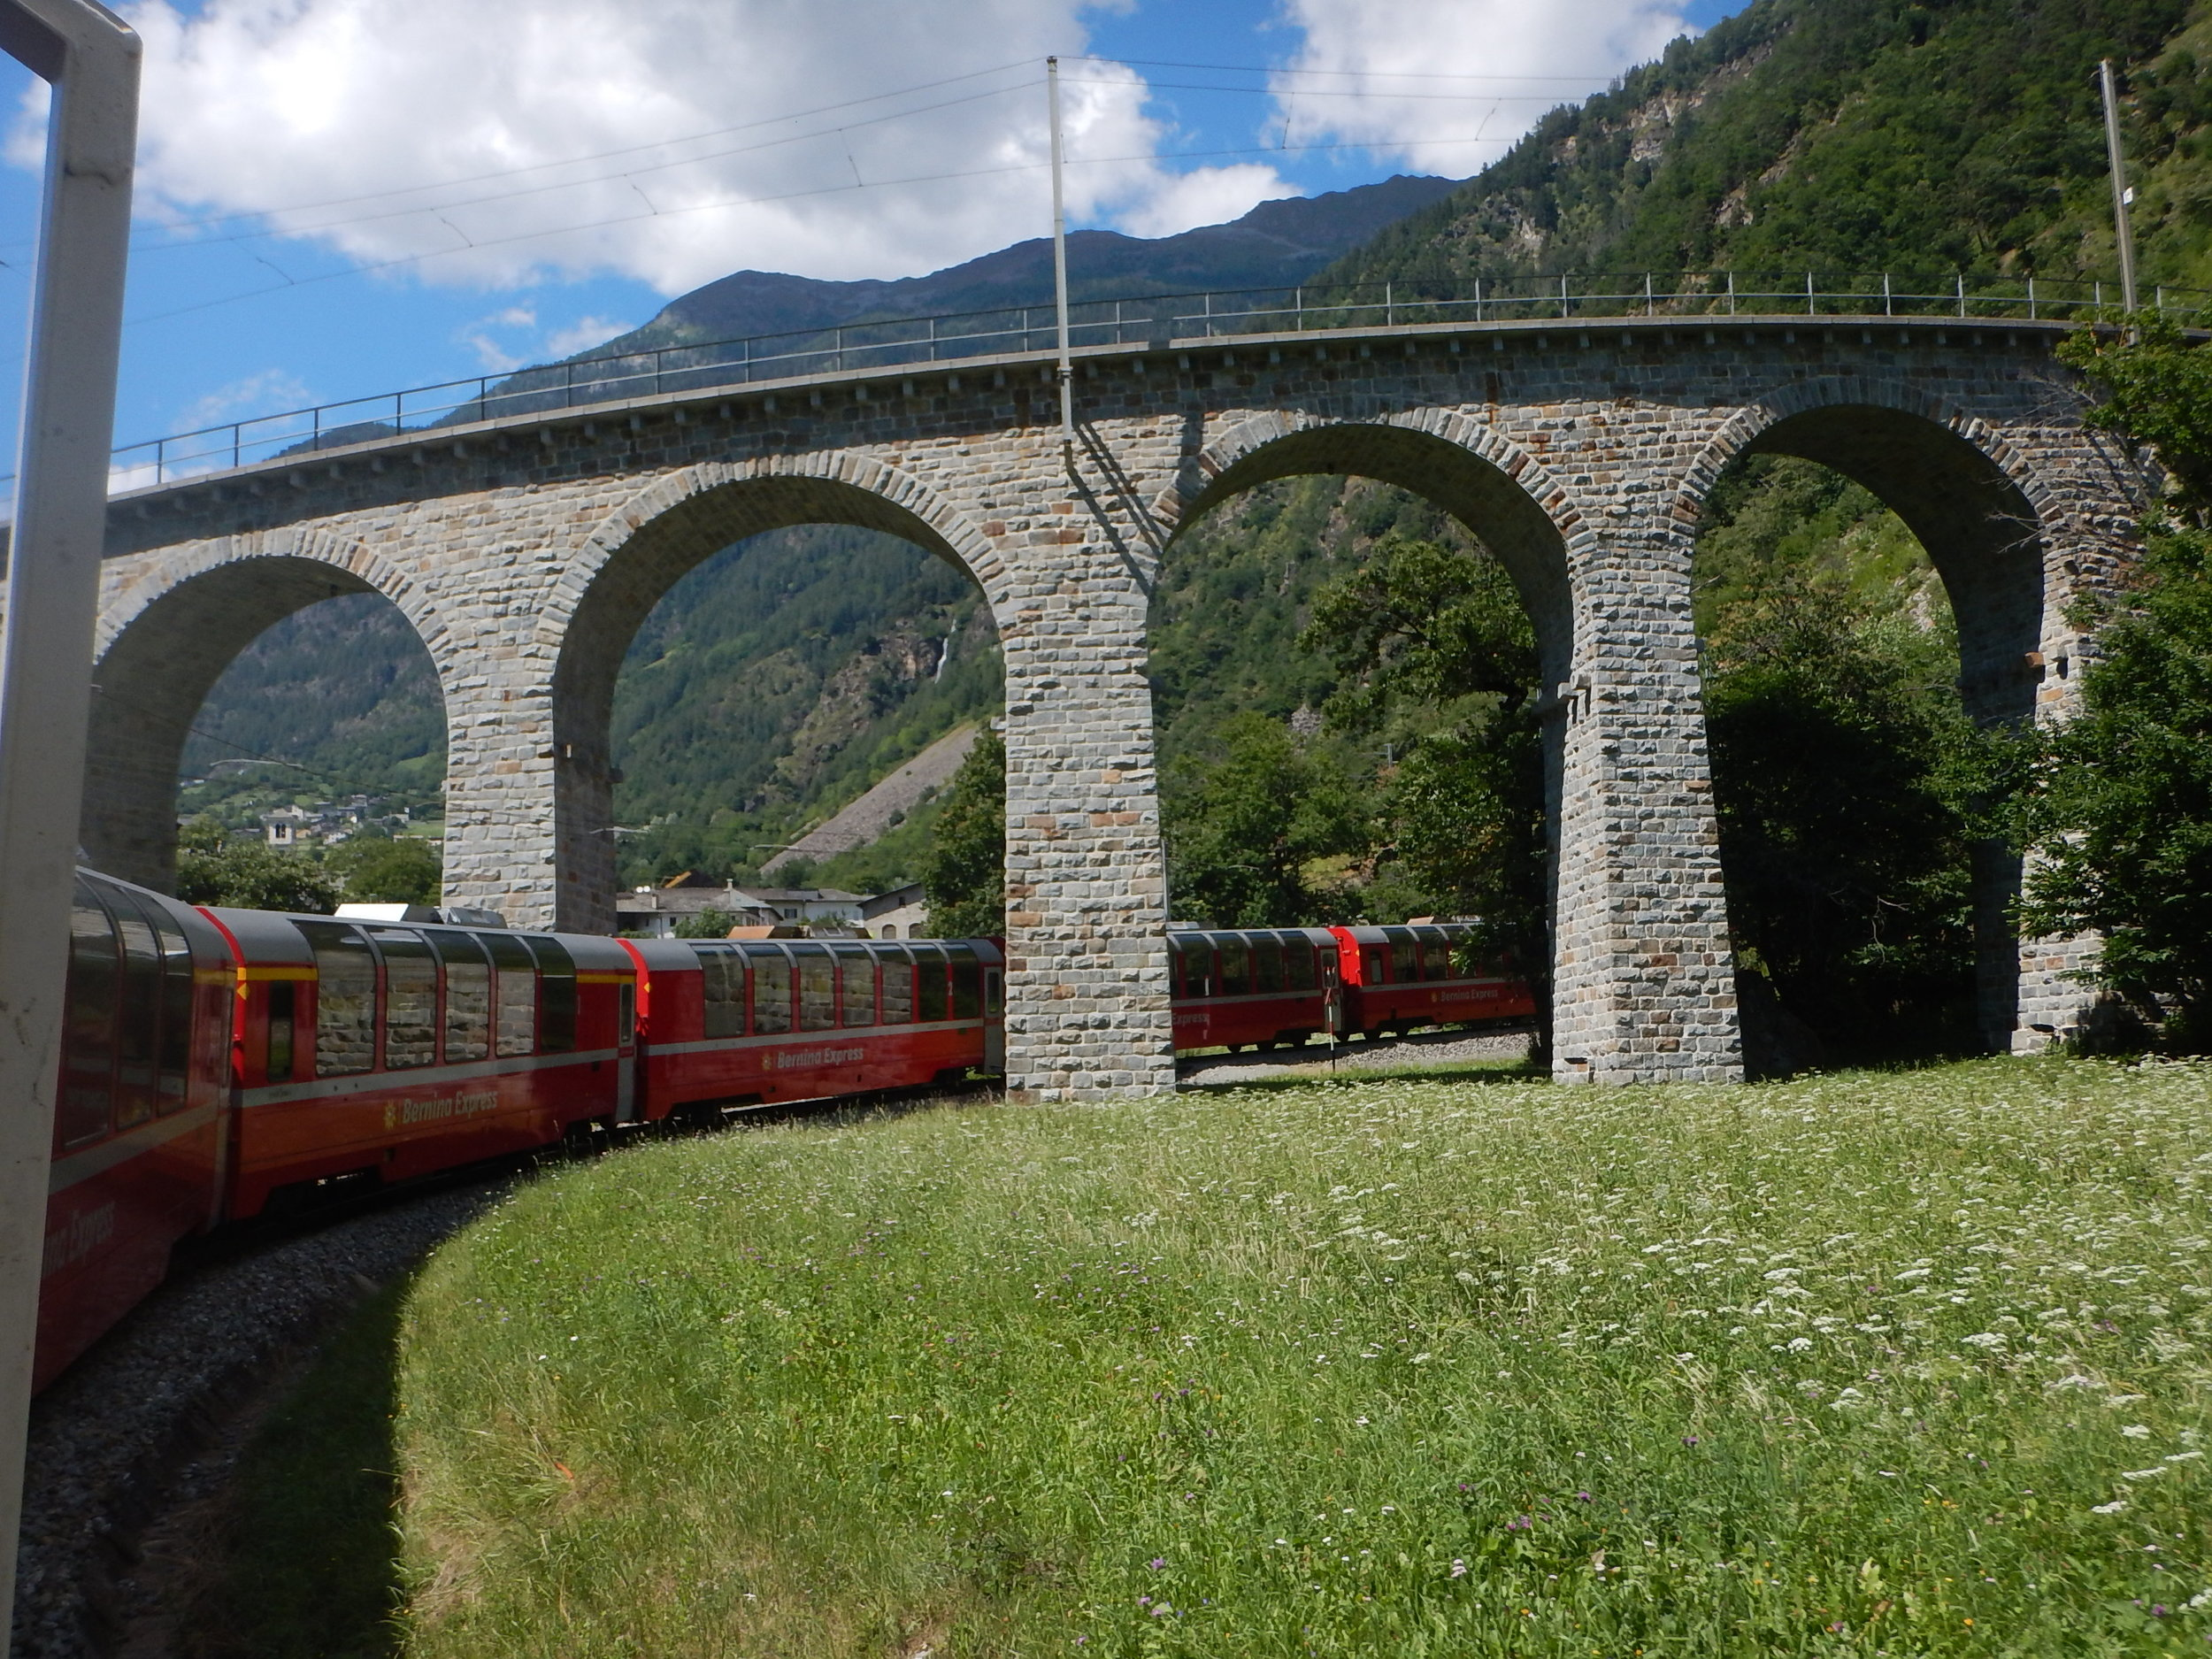 an exotic hairpin bend, the Bernina Express scenic train does this amazing loop back under itself!!